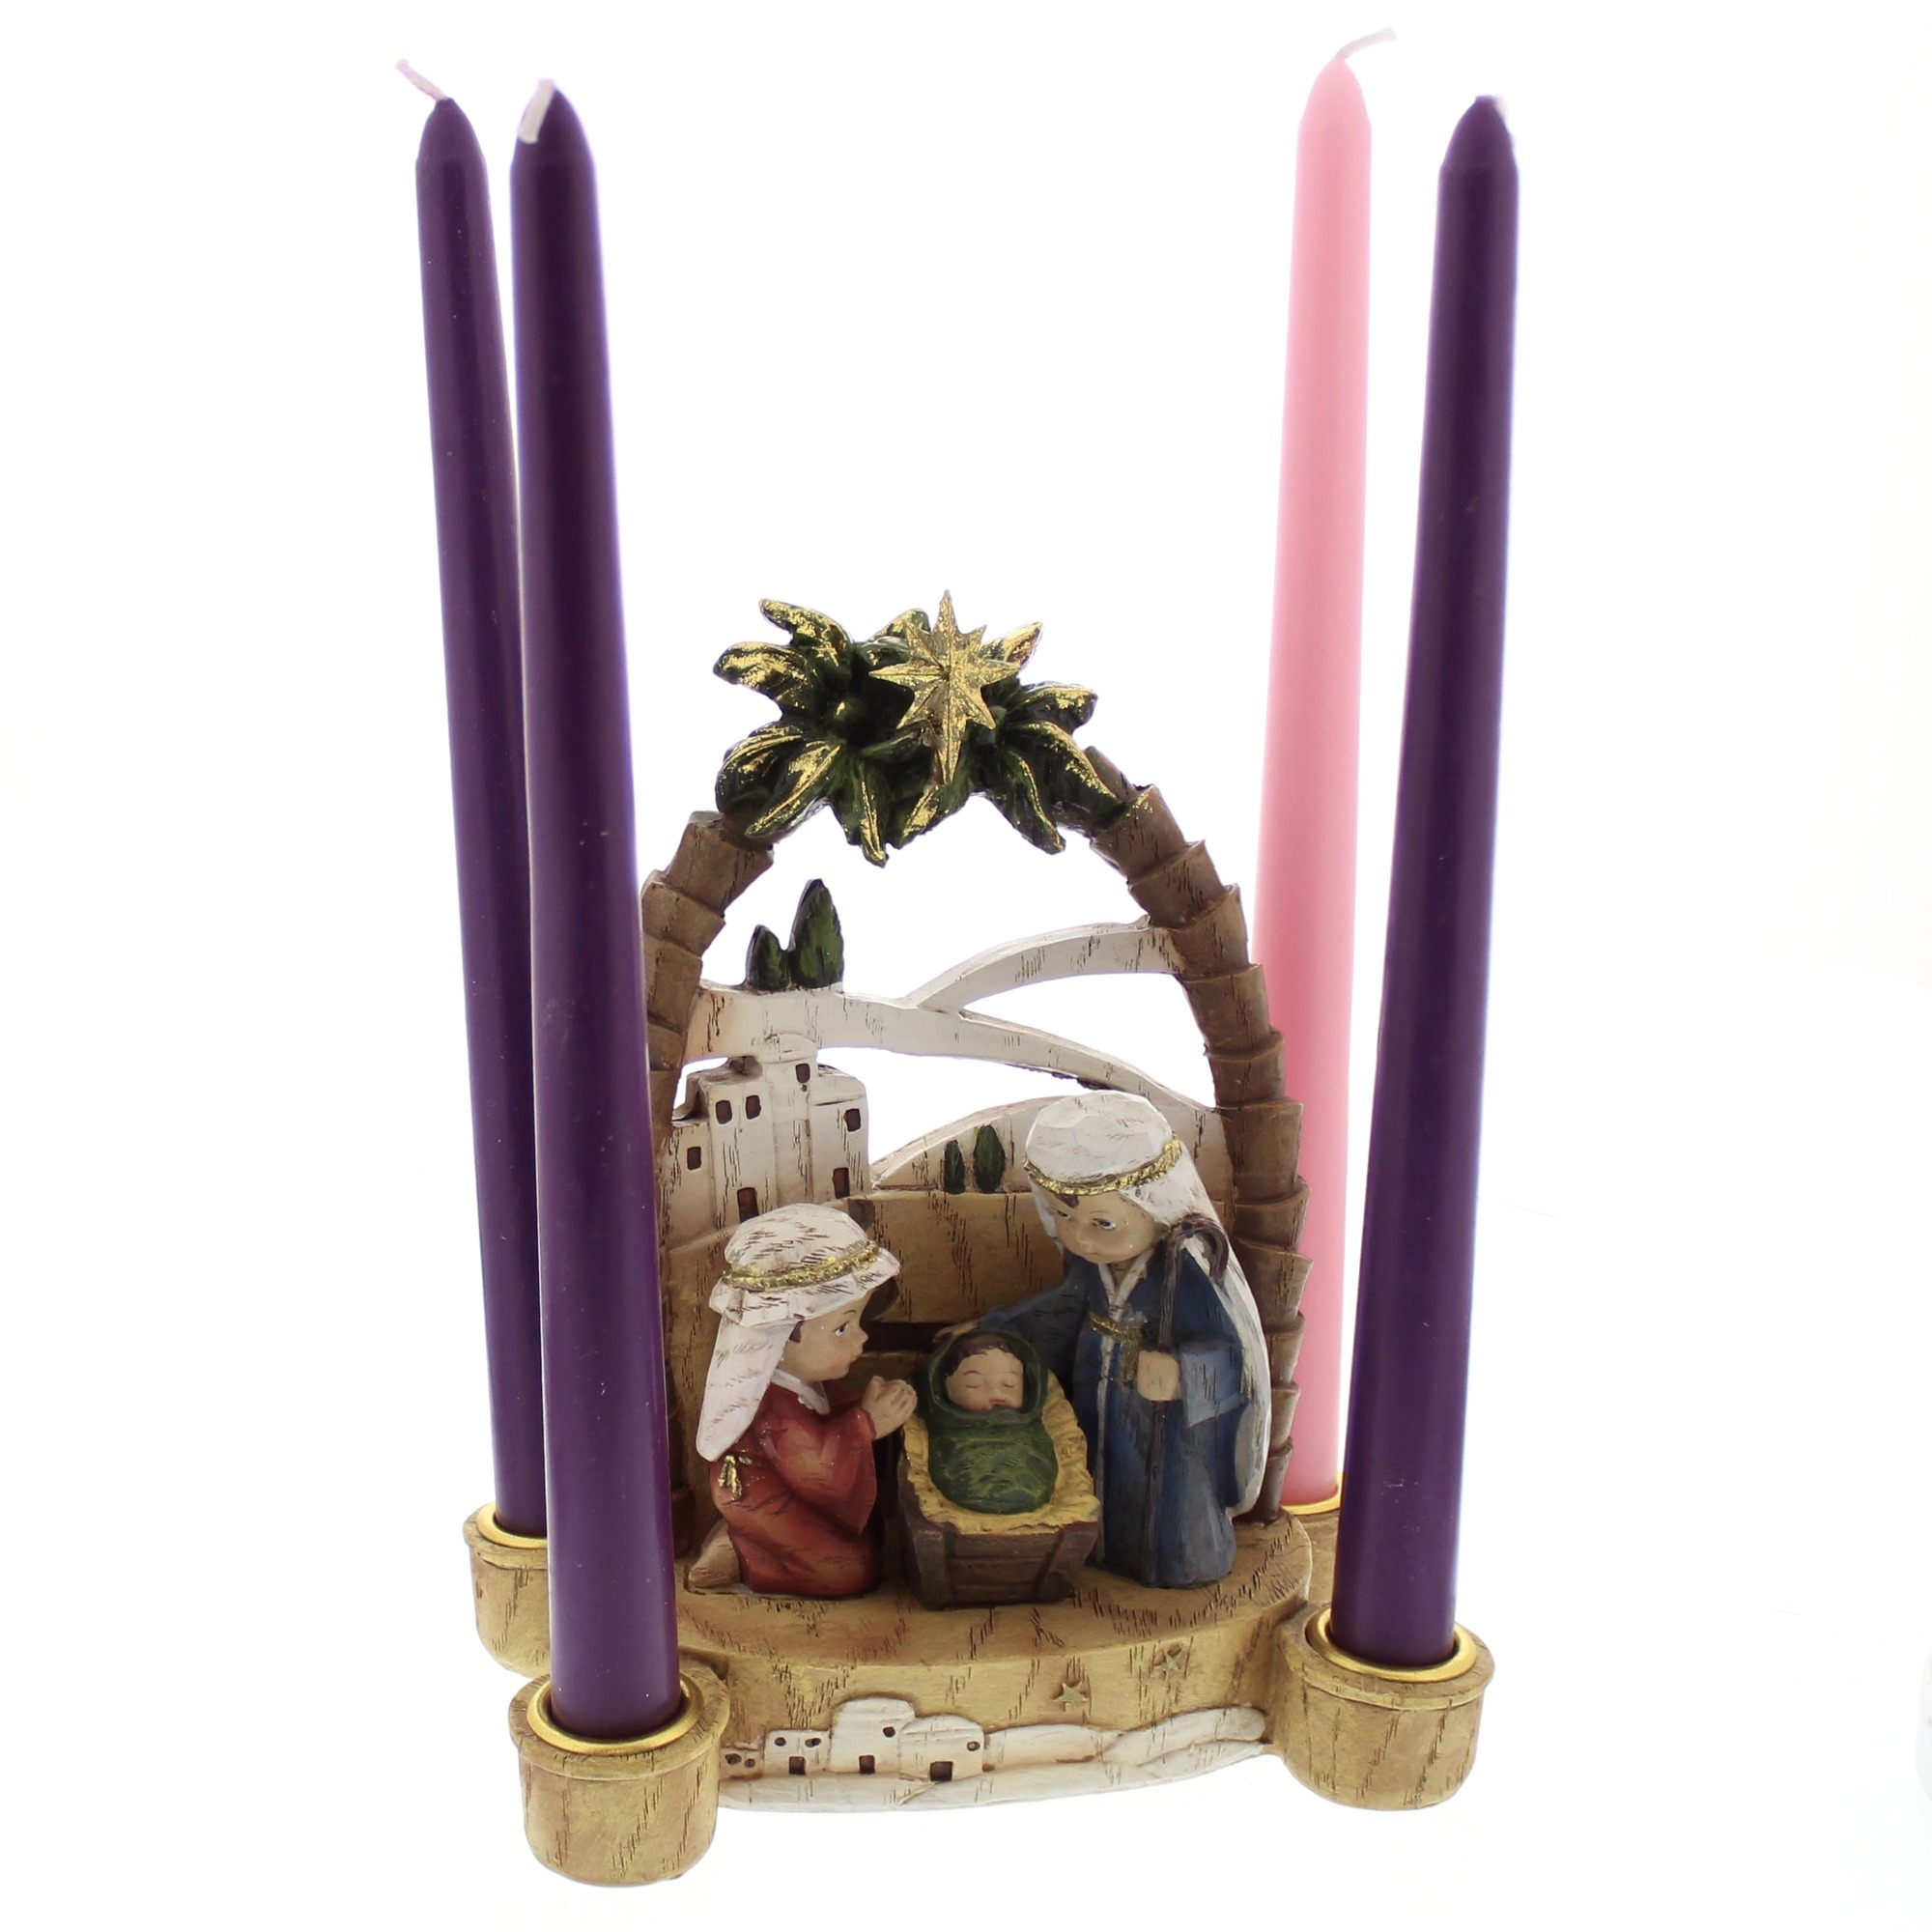 Advent wreaths wreath kits advent candles the catholic company childs christmas pageant advent wreath buycottarizona Image collections